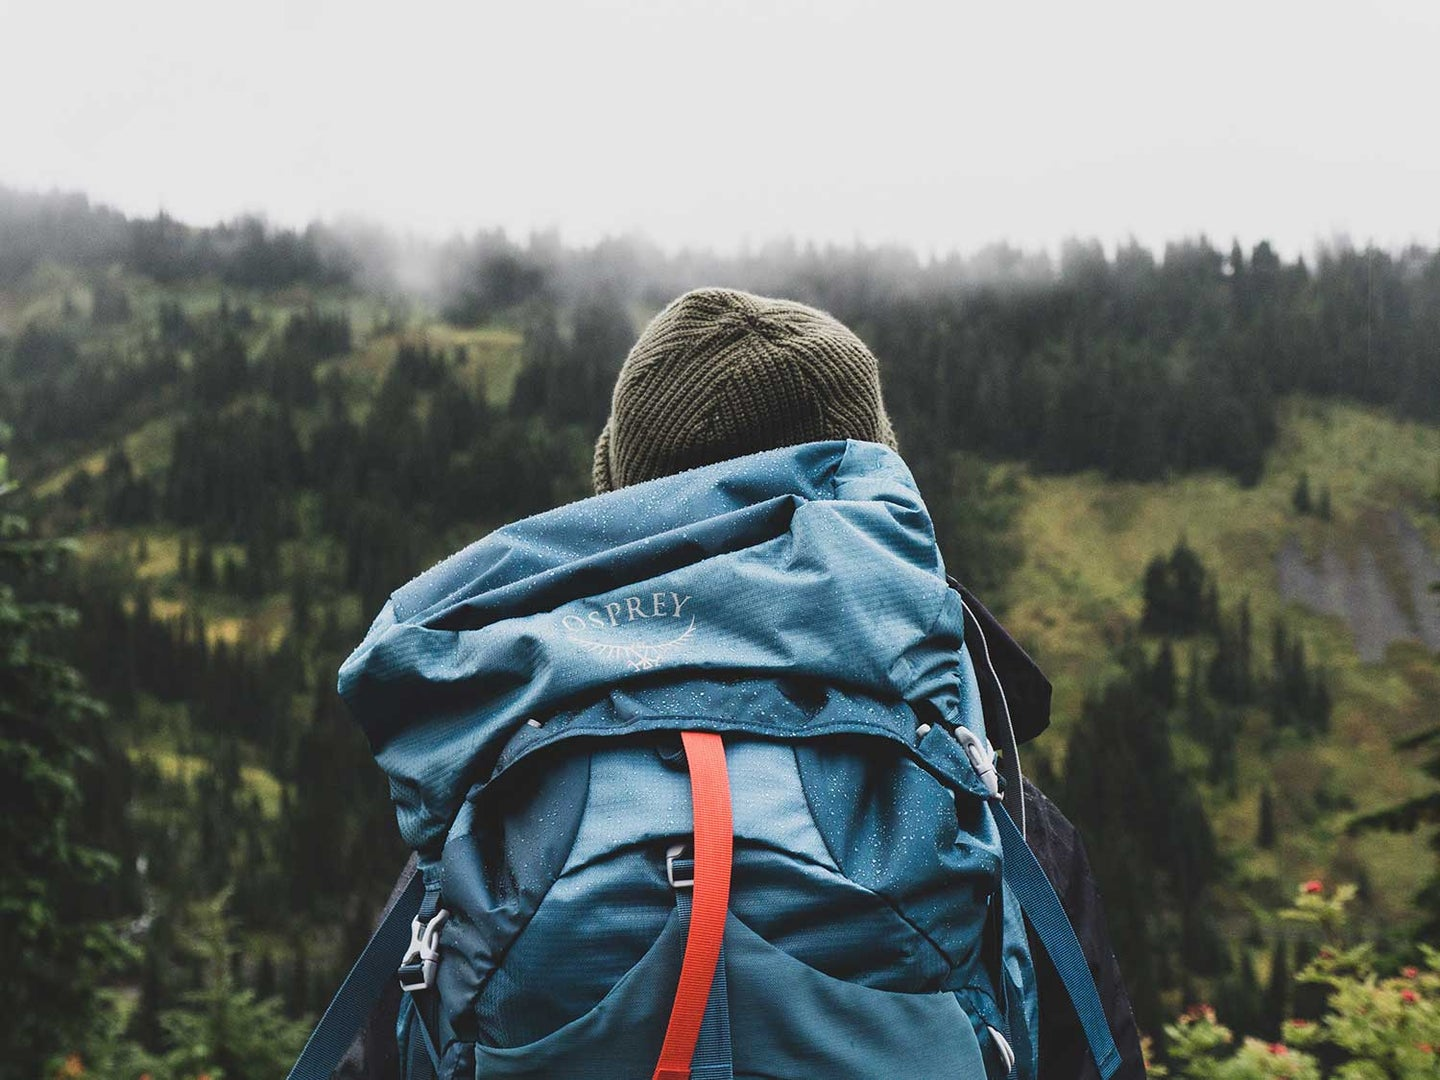 Hiking with a backpack.